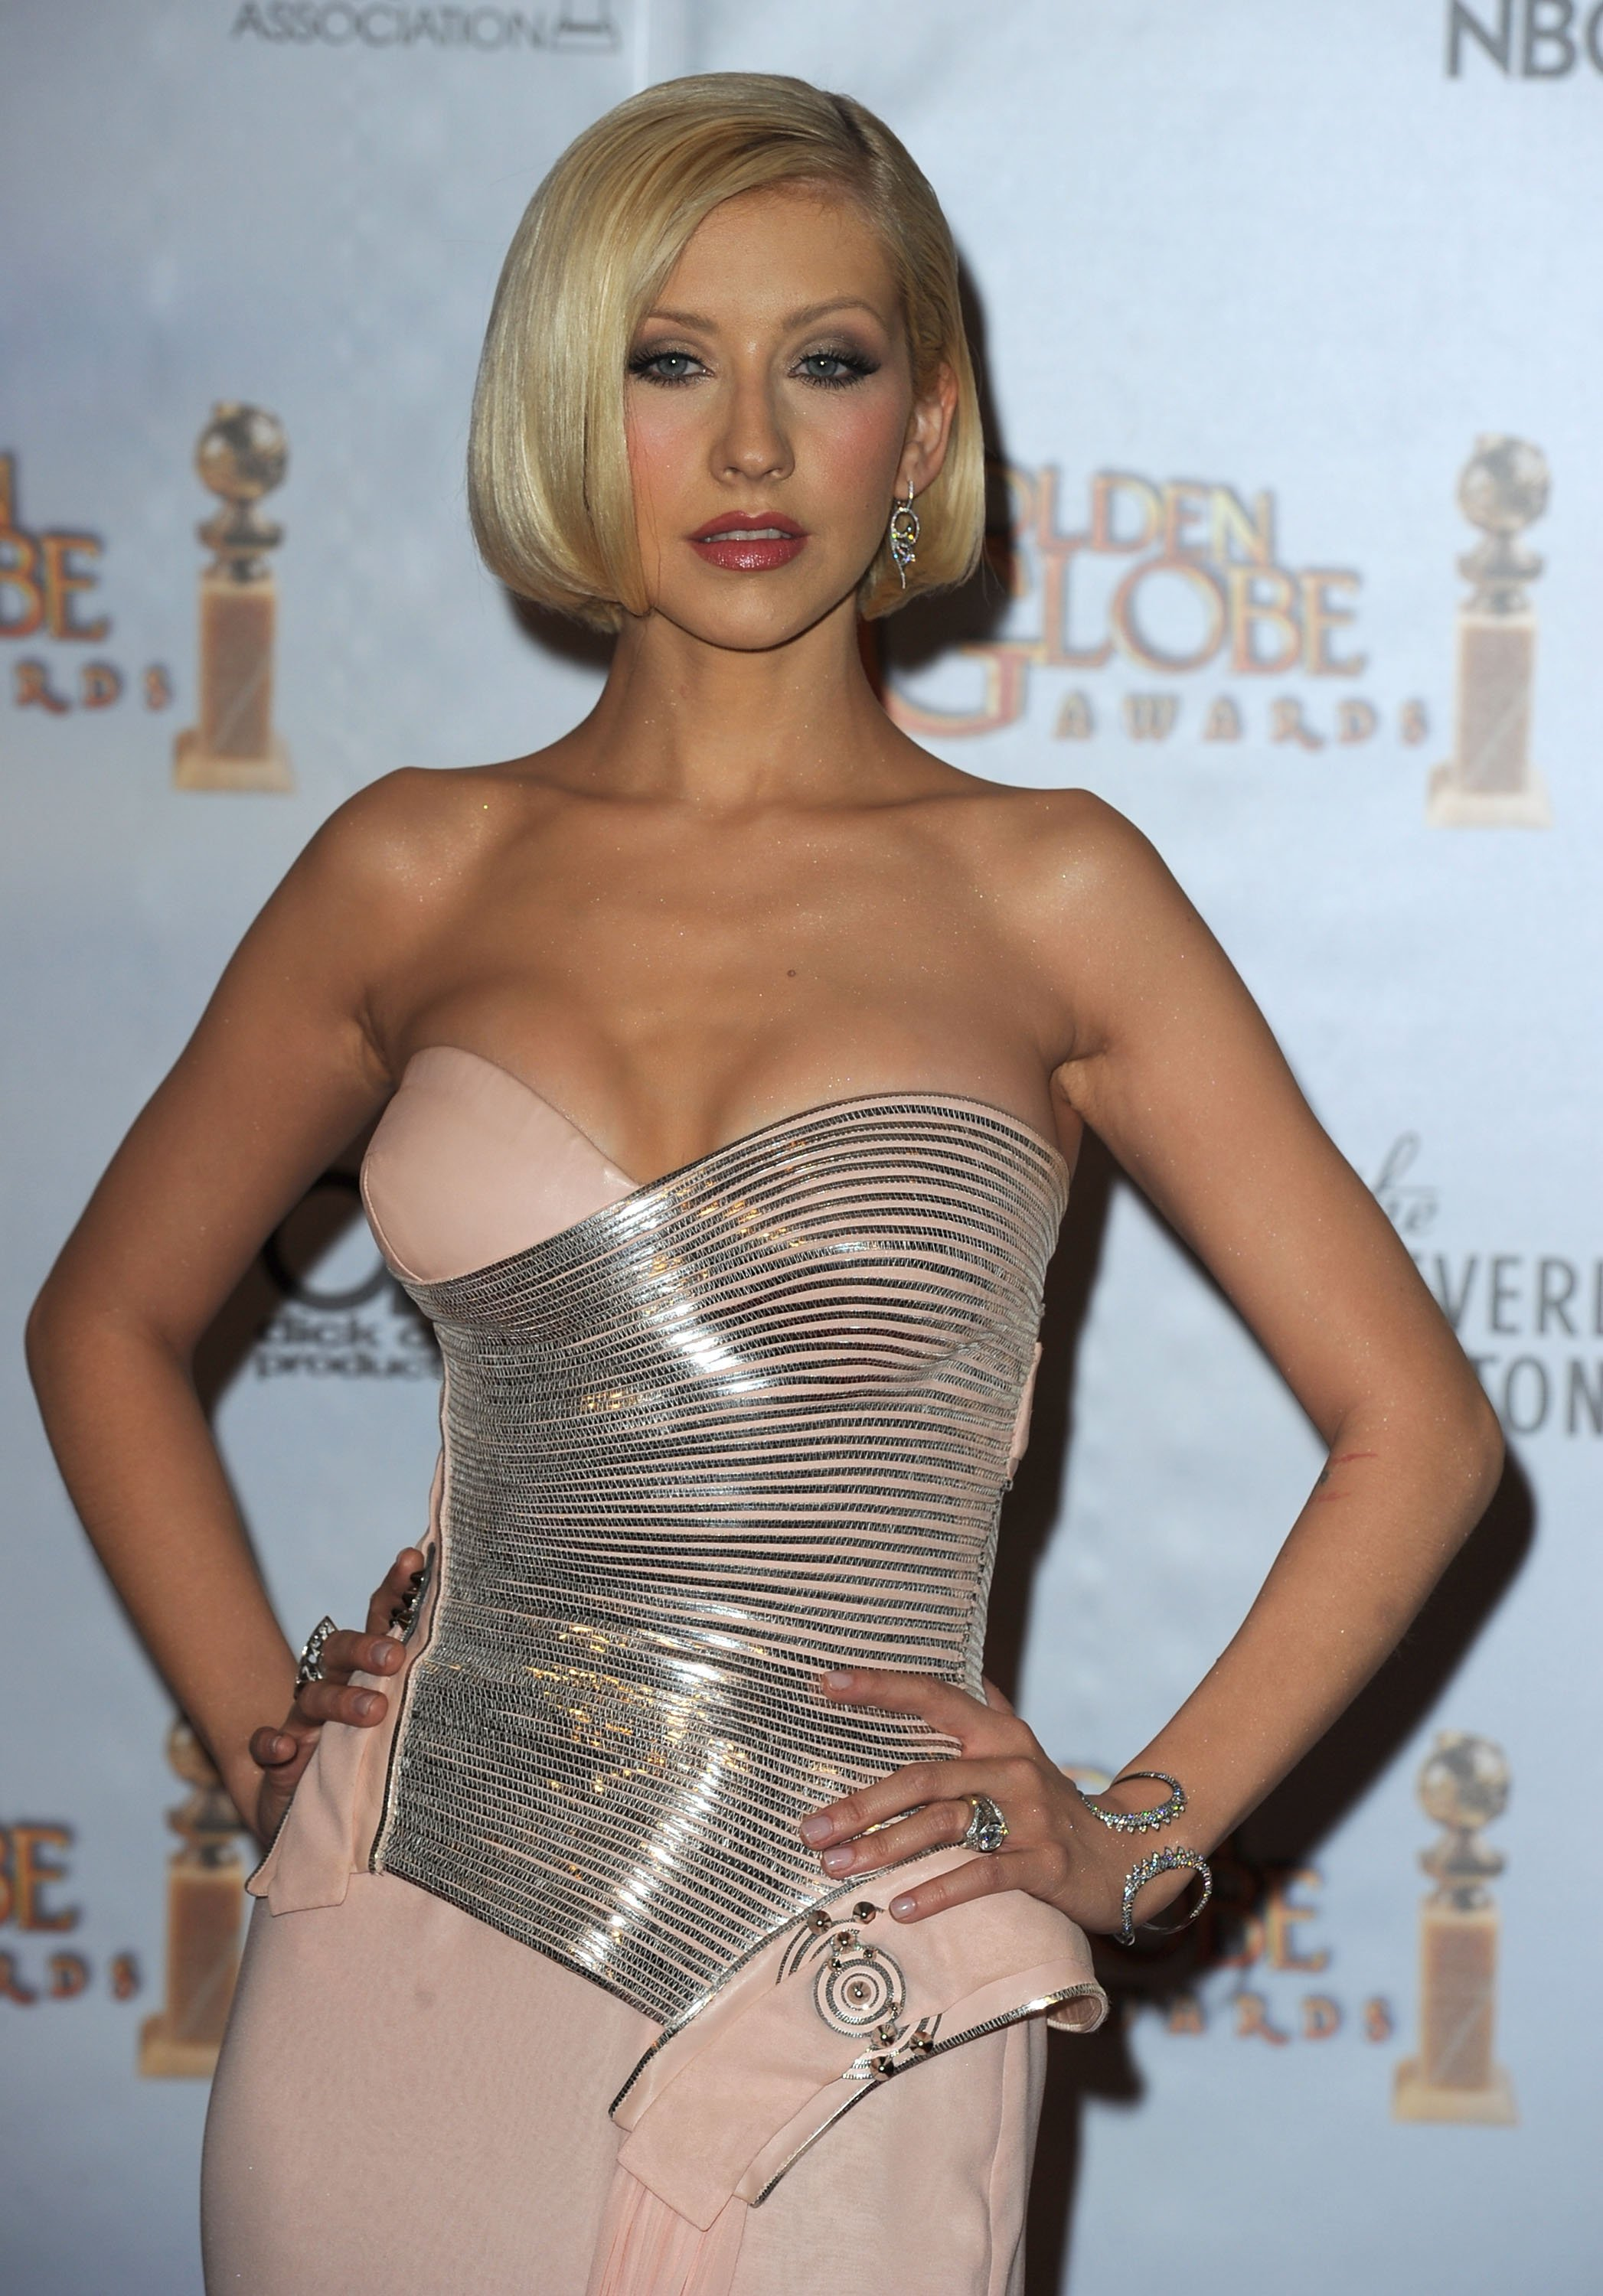 83546_Celebutopia-Christina_Aguilera_-67th_Annual_Golden_Globe_Awards_Press_Room-01_01_122_232lo.jpg